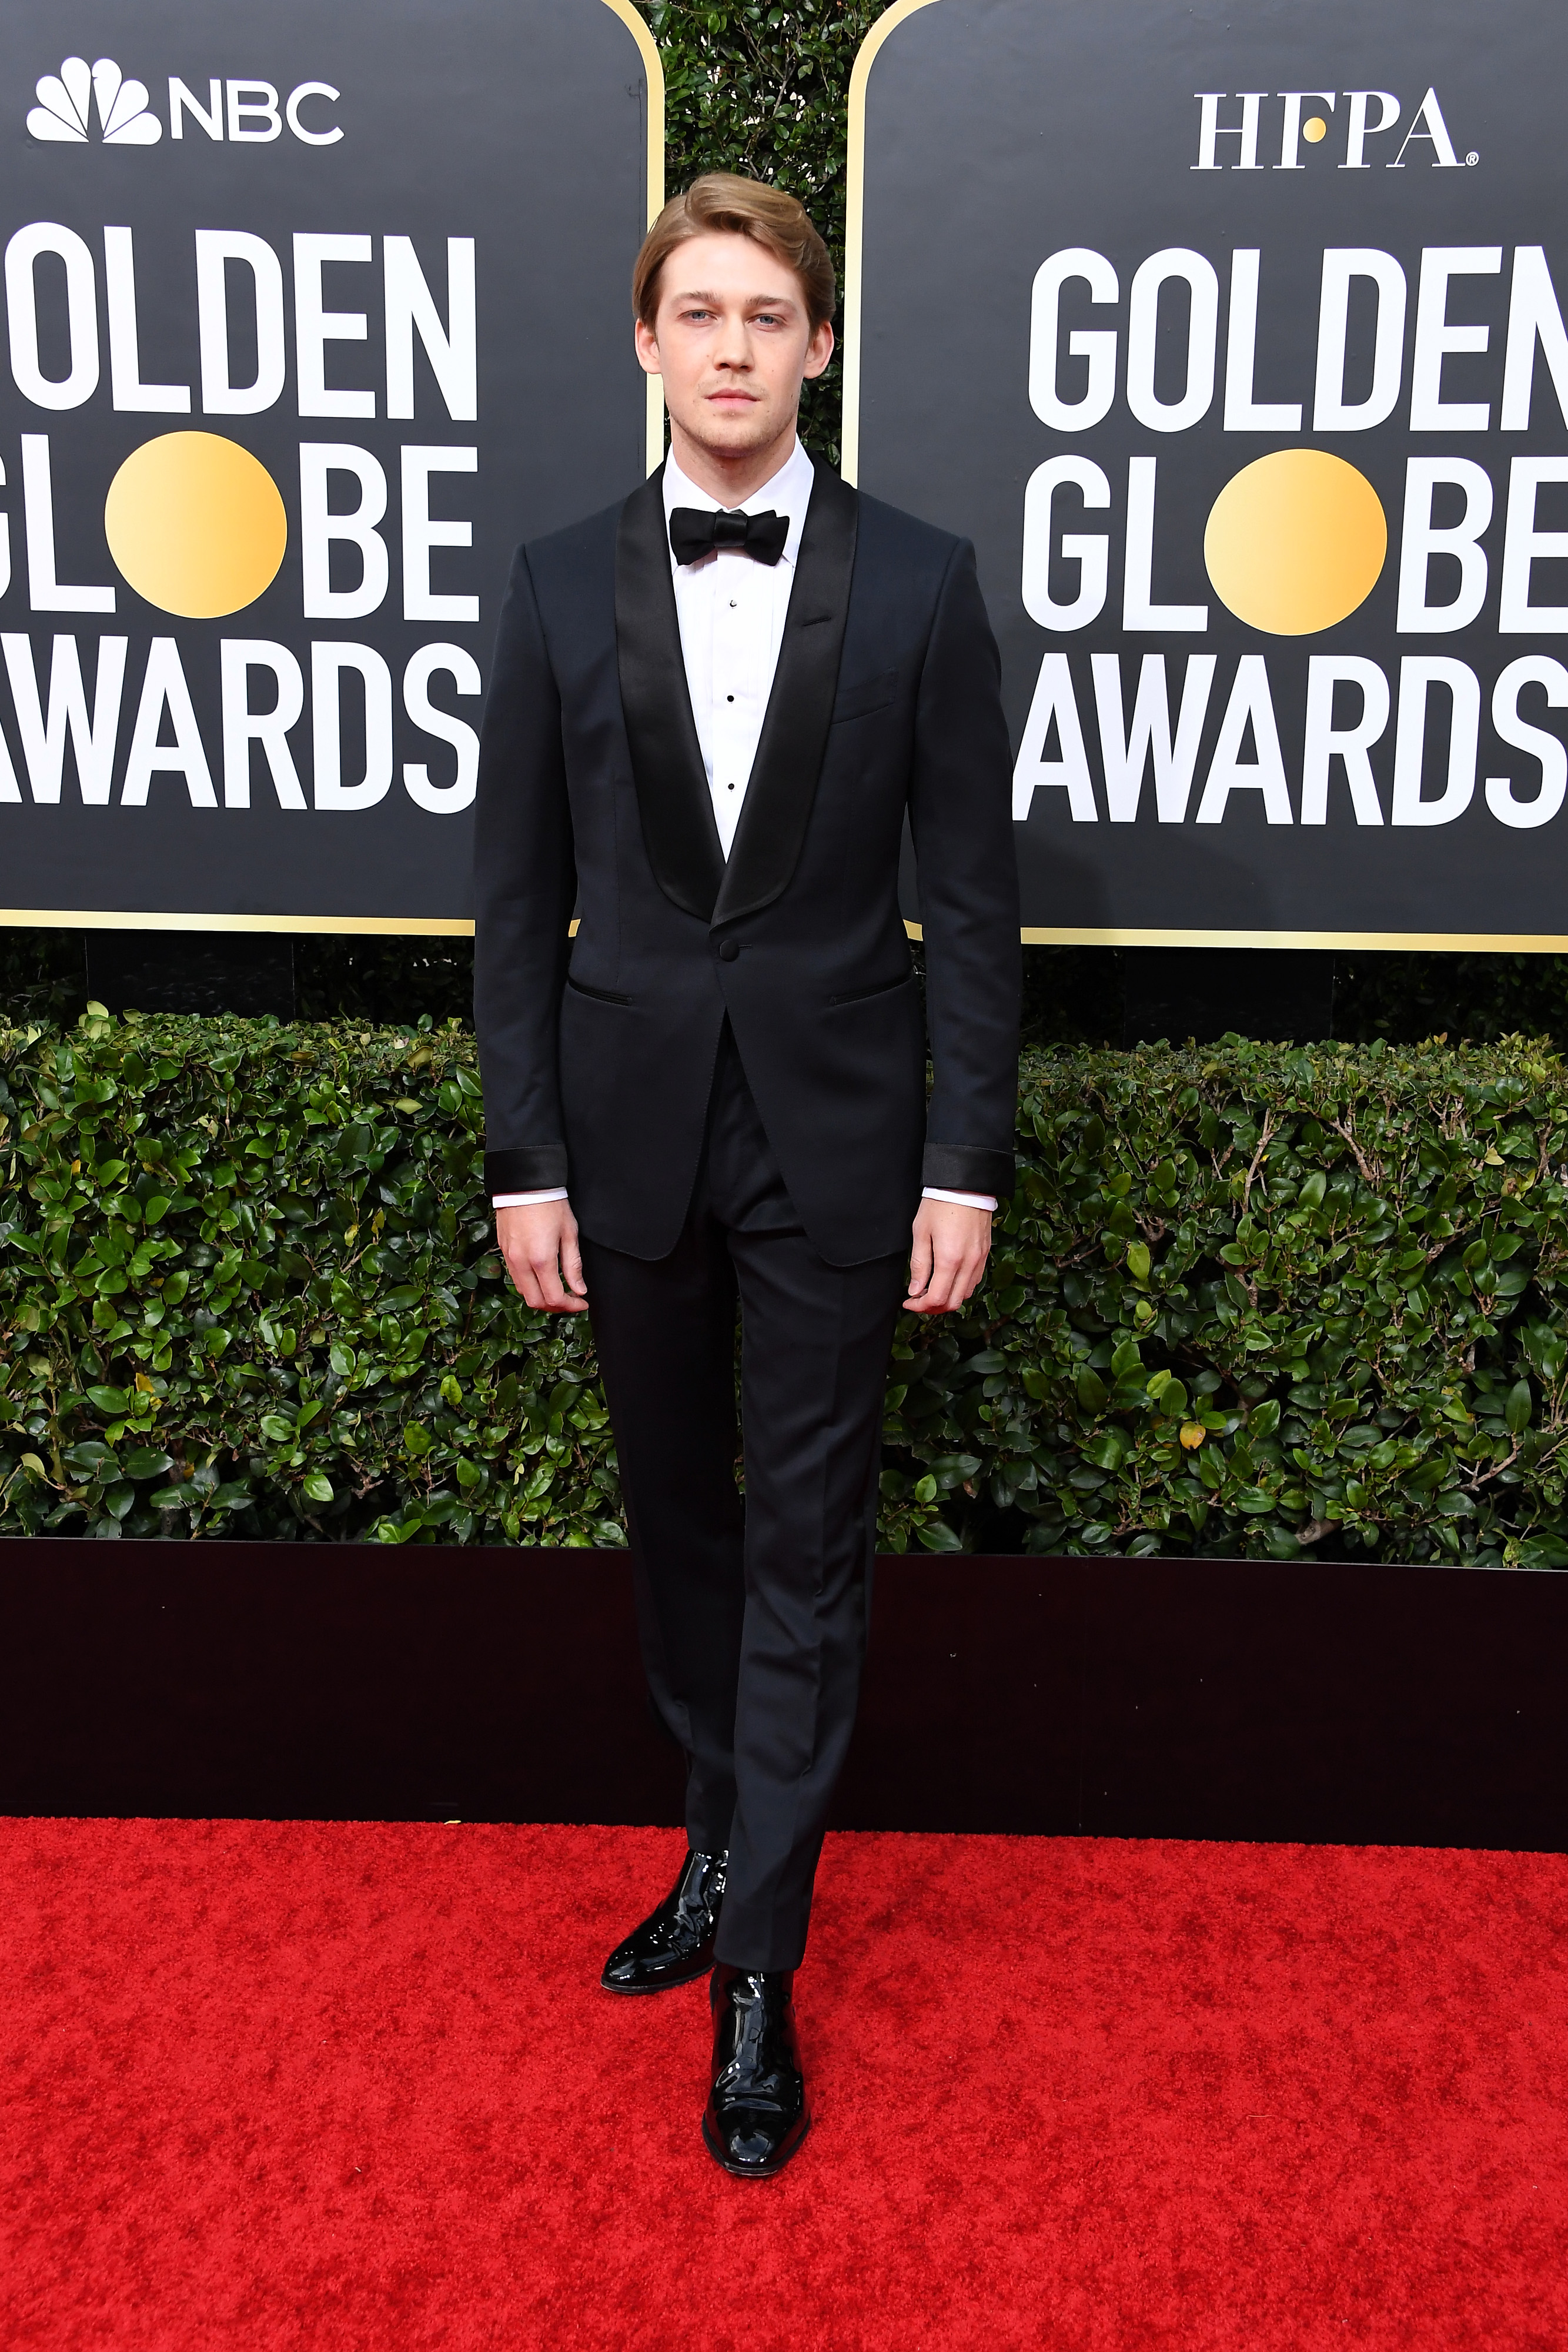 BEVERLY HILLS, CALIFORNIA - JANUARY 05: Joe Alwyn attends the 77th Annual Golden Globe Awards at The Beverly Hilton Hotel on January 05, 2020 in Beverly Hills, California. (Photo by Steve Granitz/WireImage)